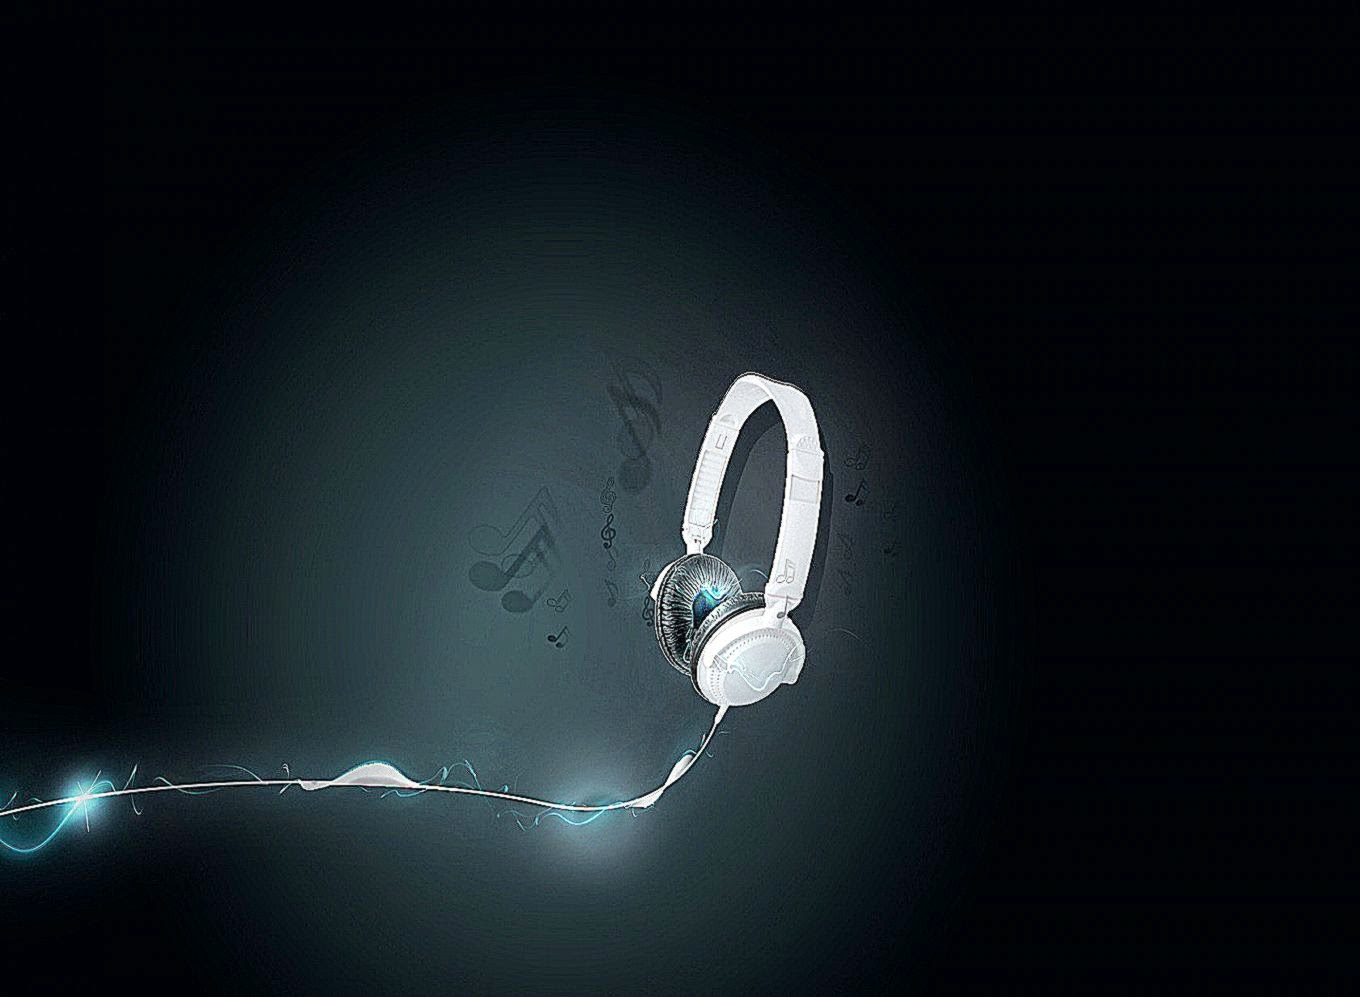 Music headphones wallpaper gadget and pc wallpaper for 3d search engine